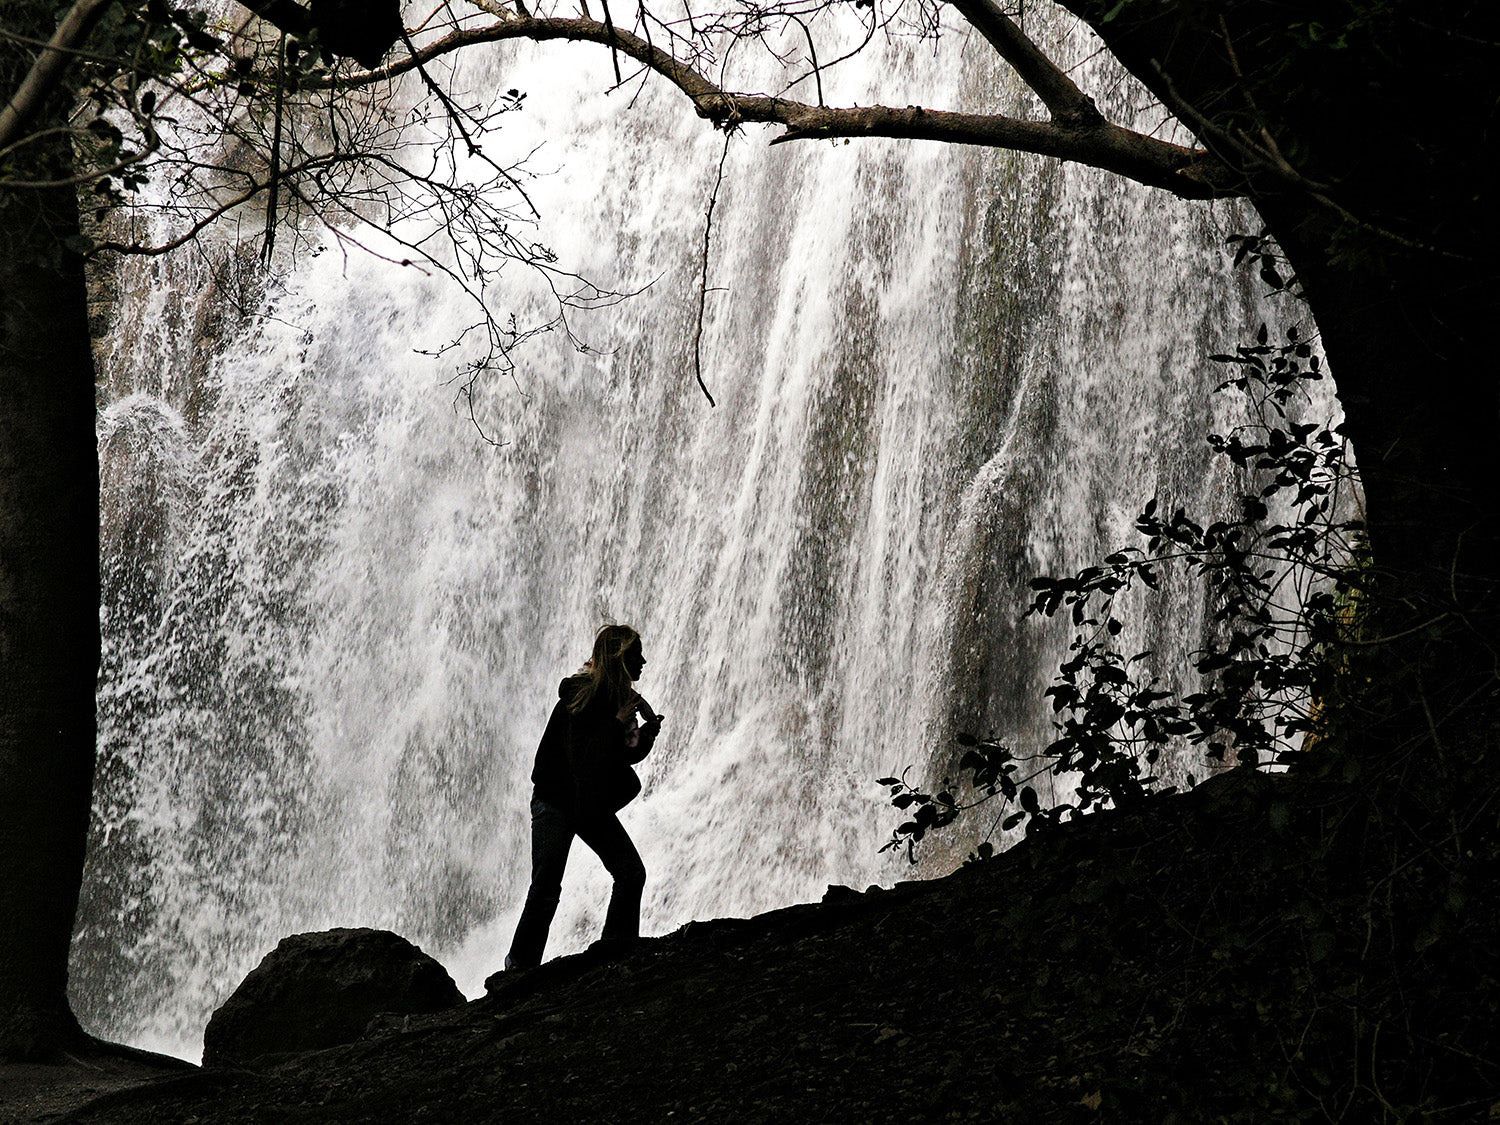 Escondido Falls (best hiking trails in LA for locals)